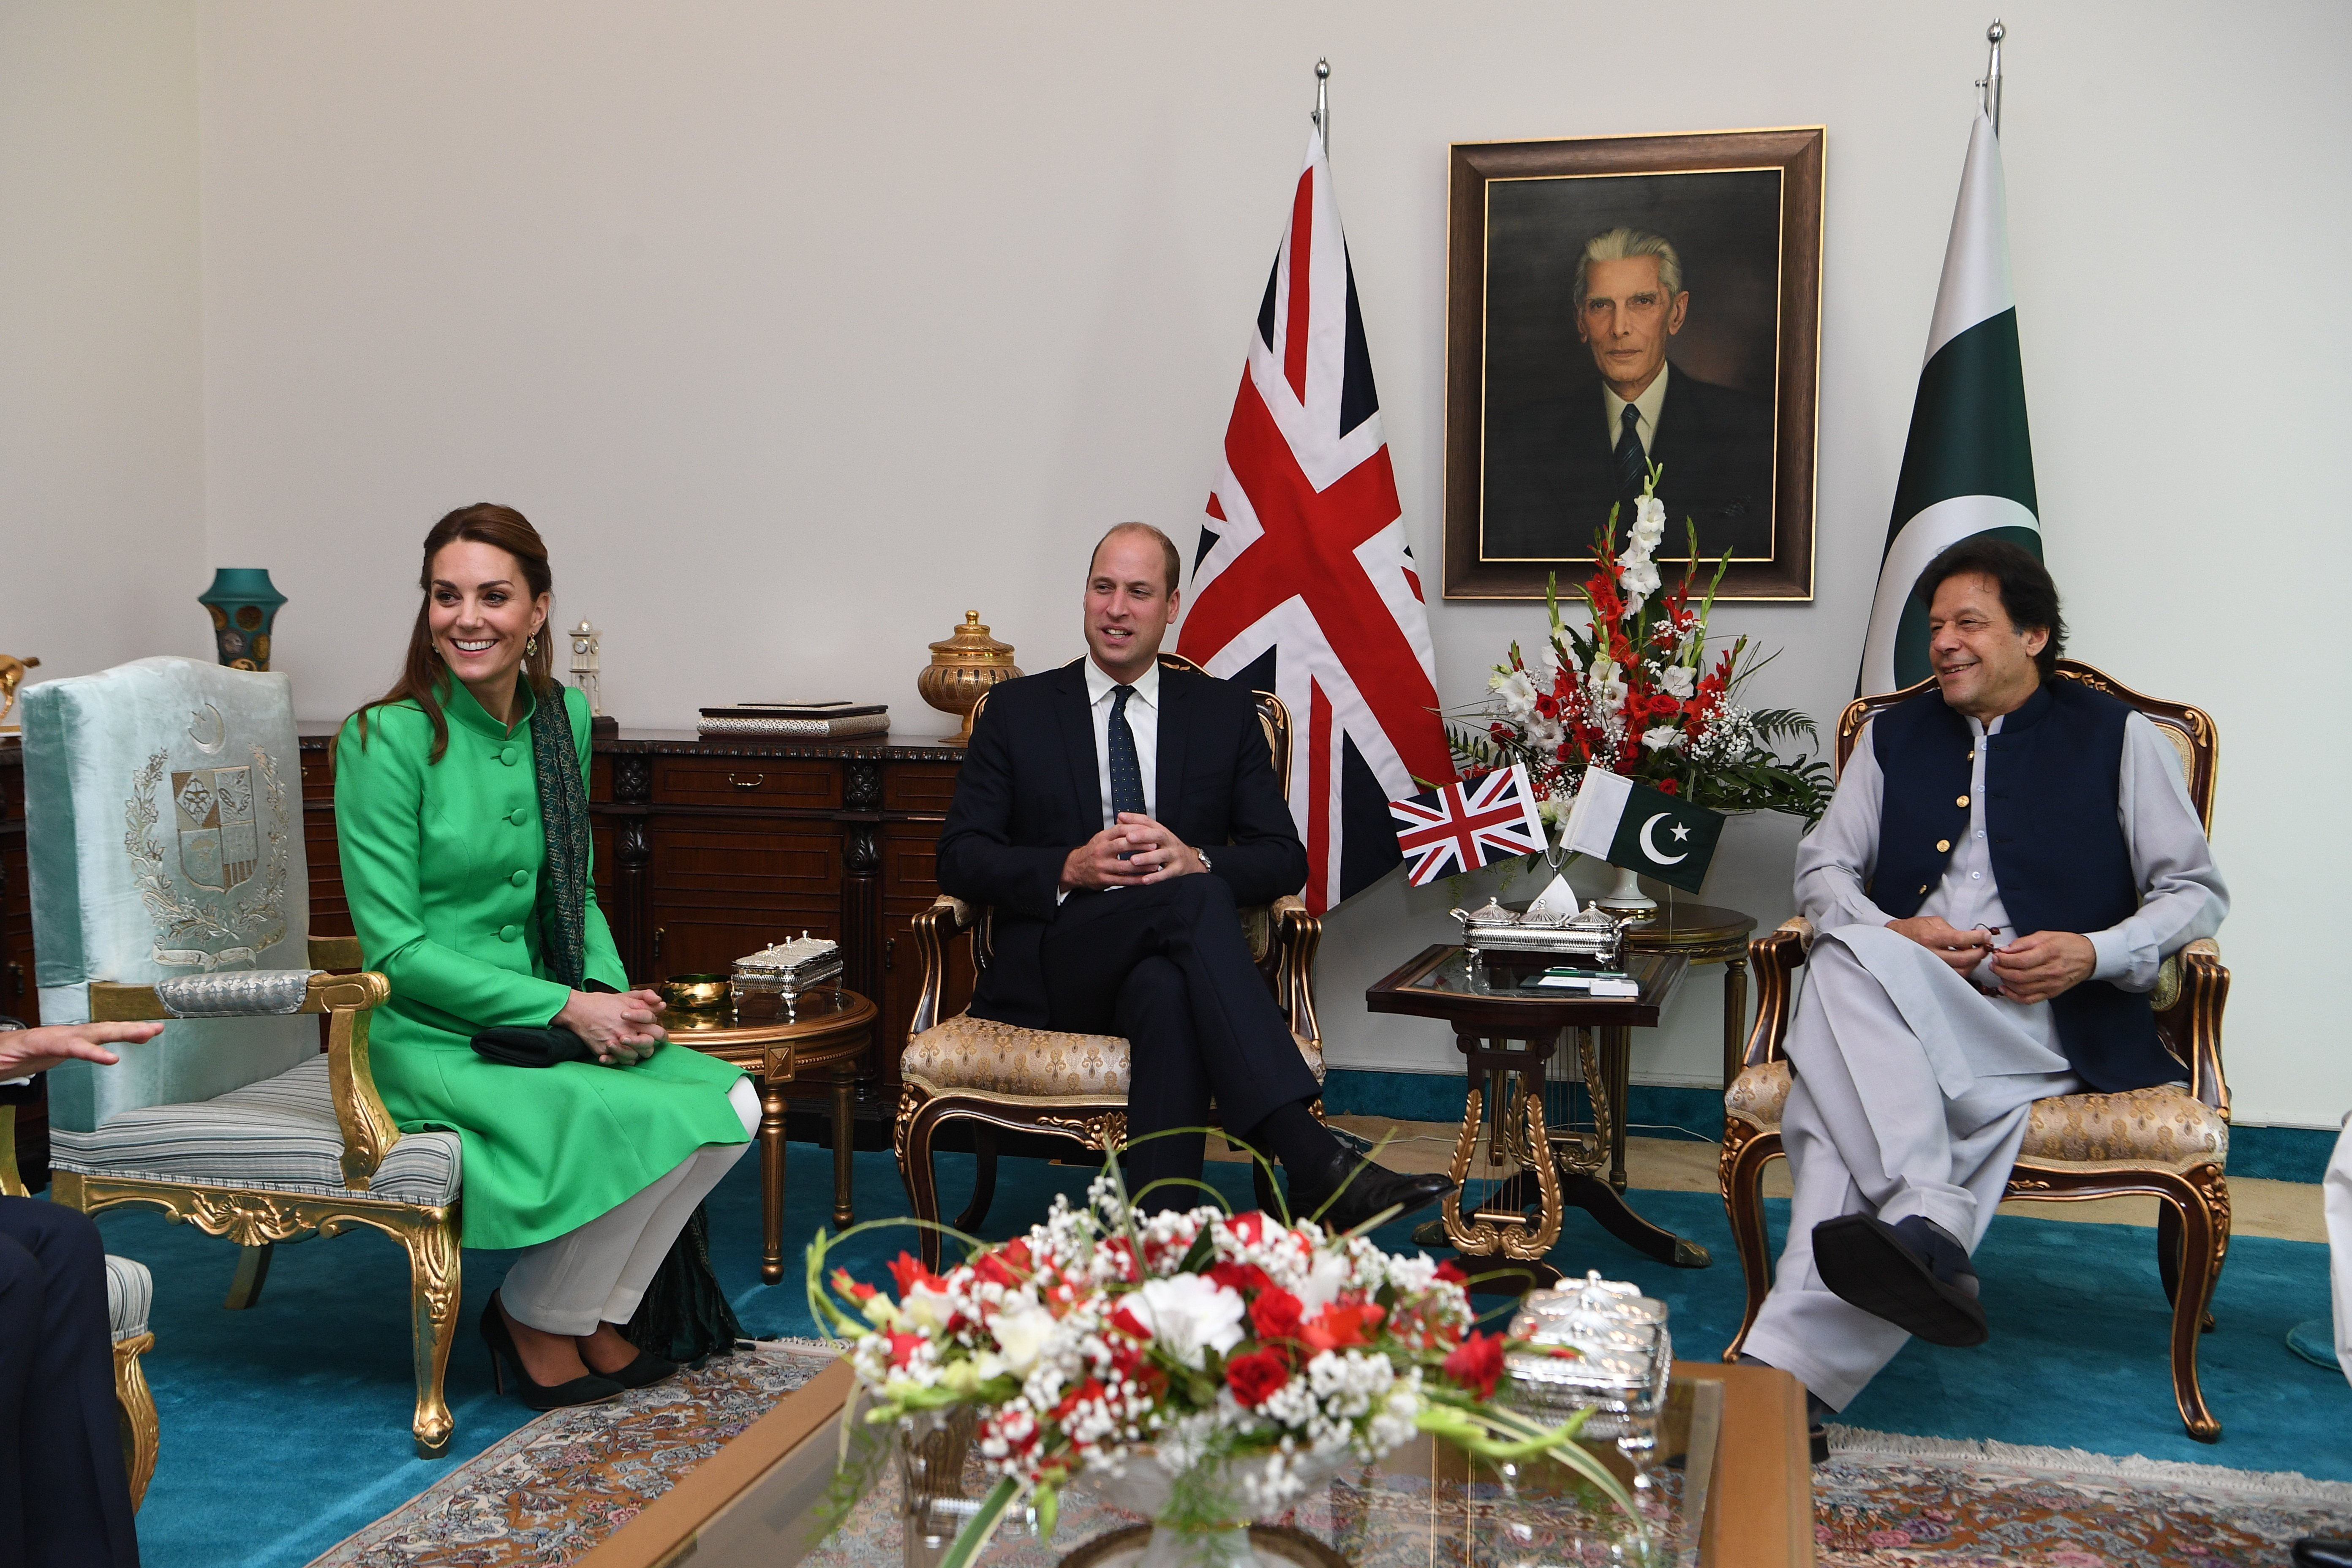 Kate and Wills later visited the Prime Minister of Pakistan Imran Khan in central Islamabad